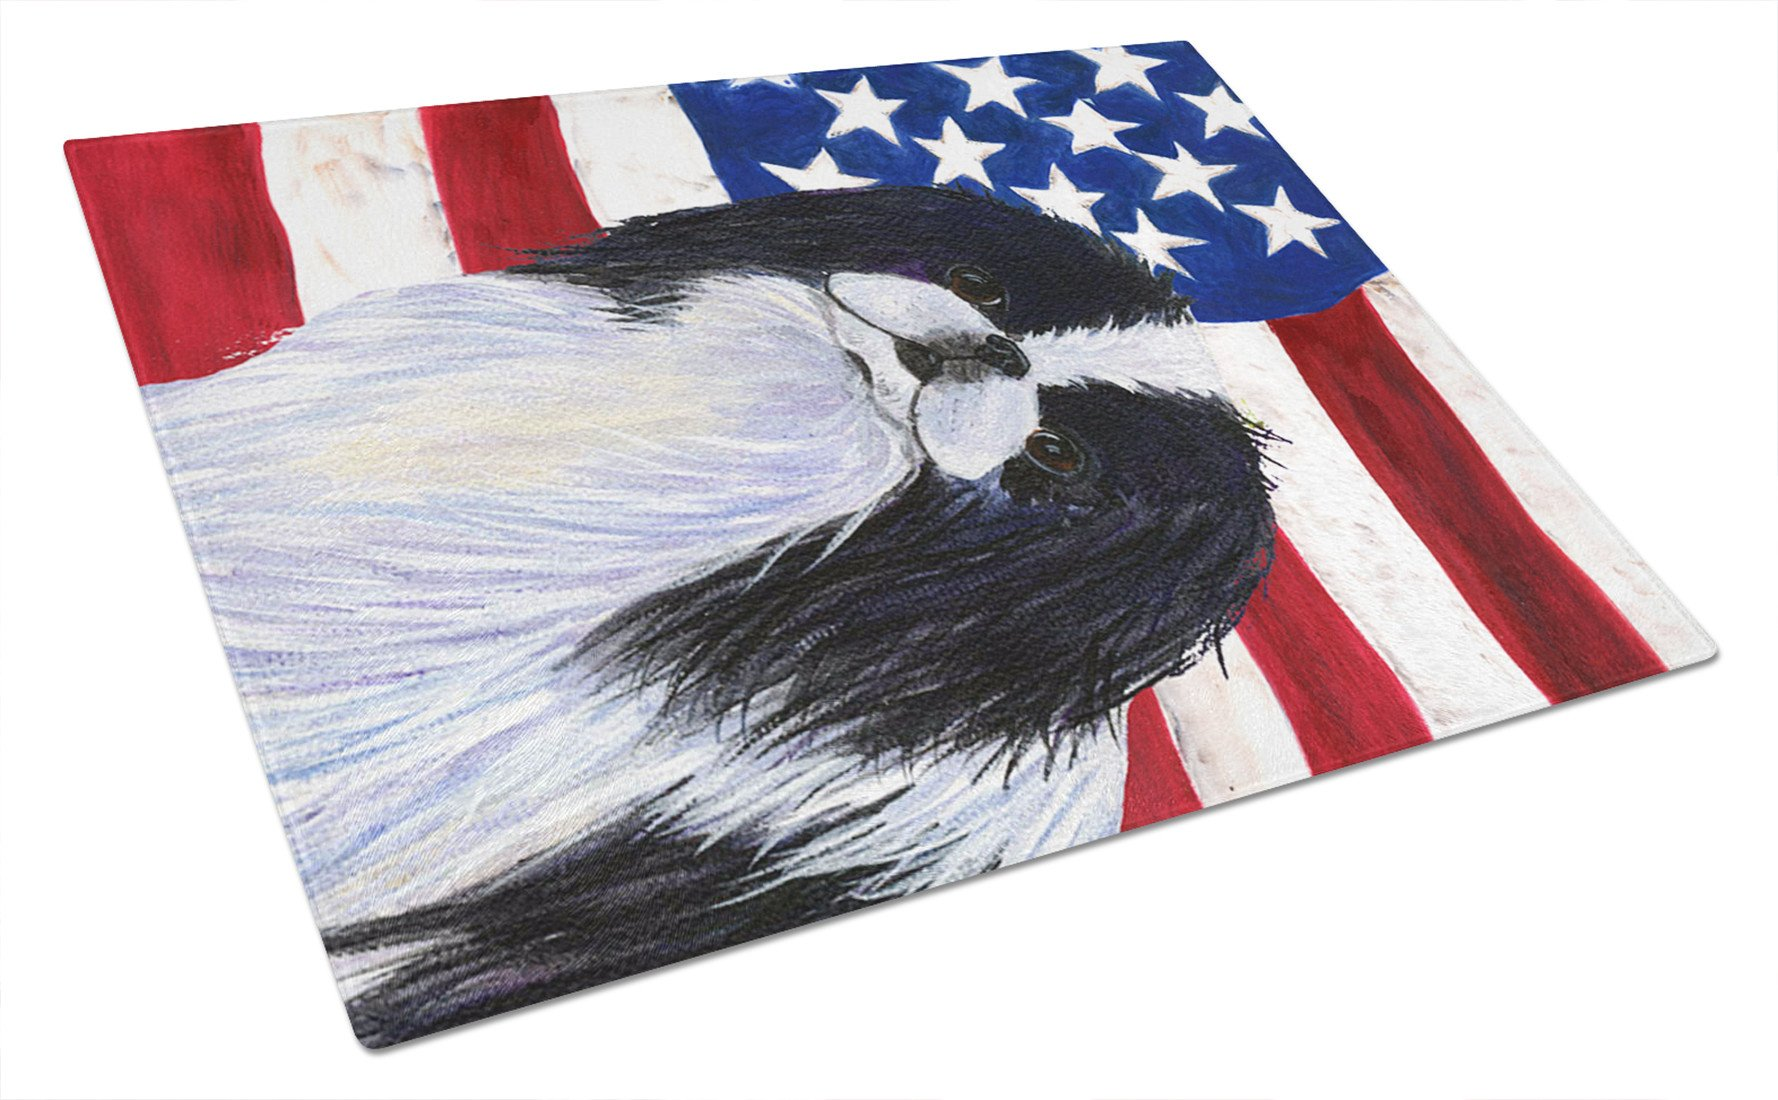 USA American Flag with Japanese Chin Glass Cutting Board Large by Caroline's Treasures